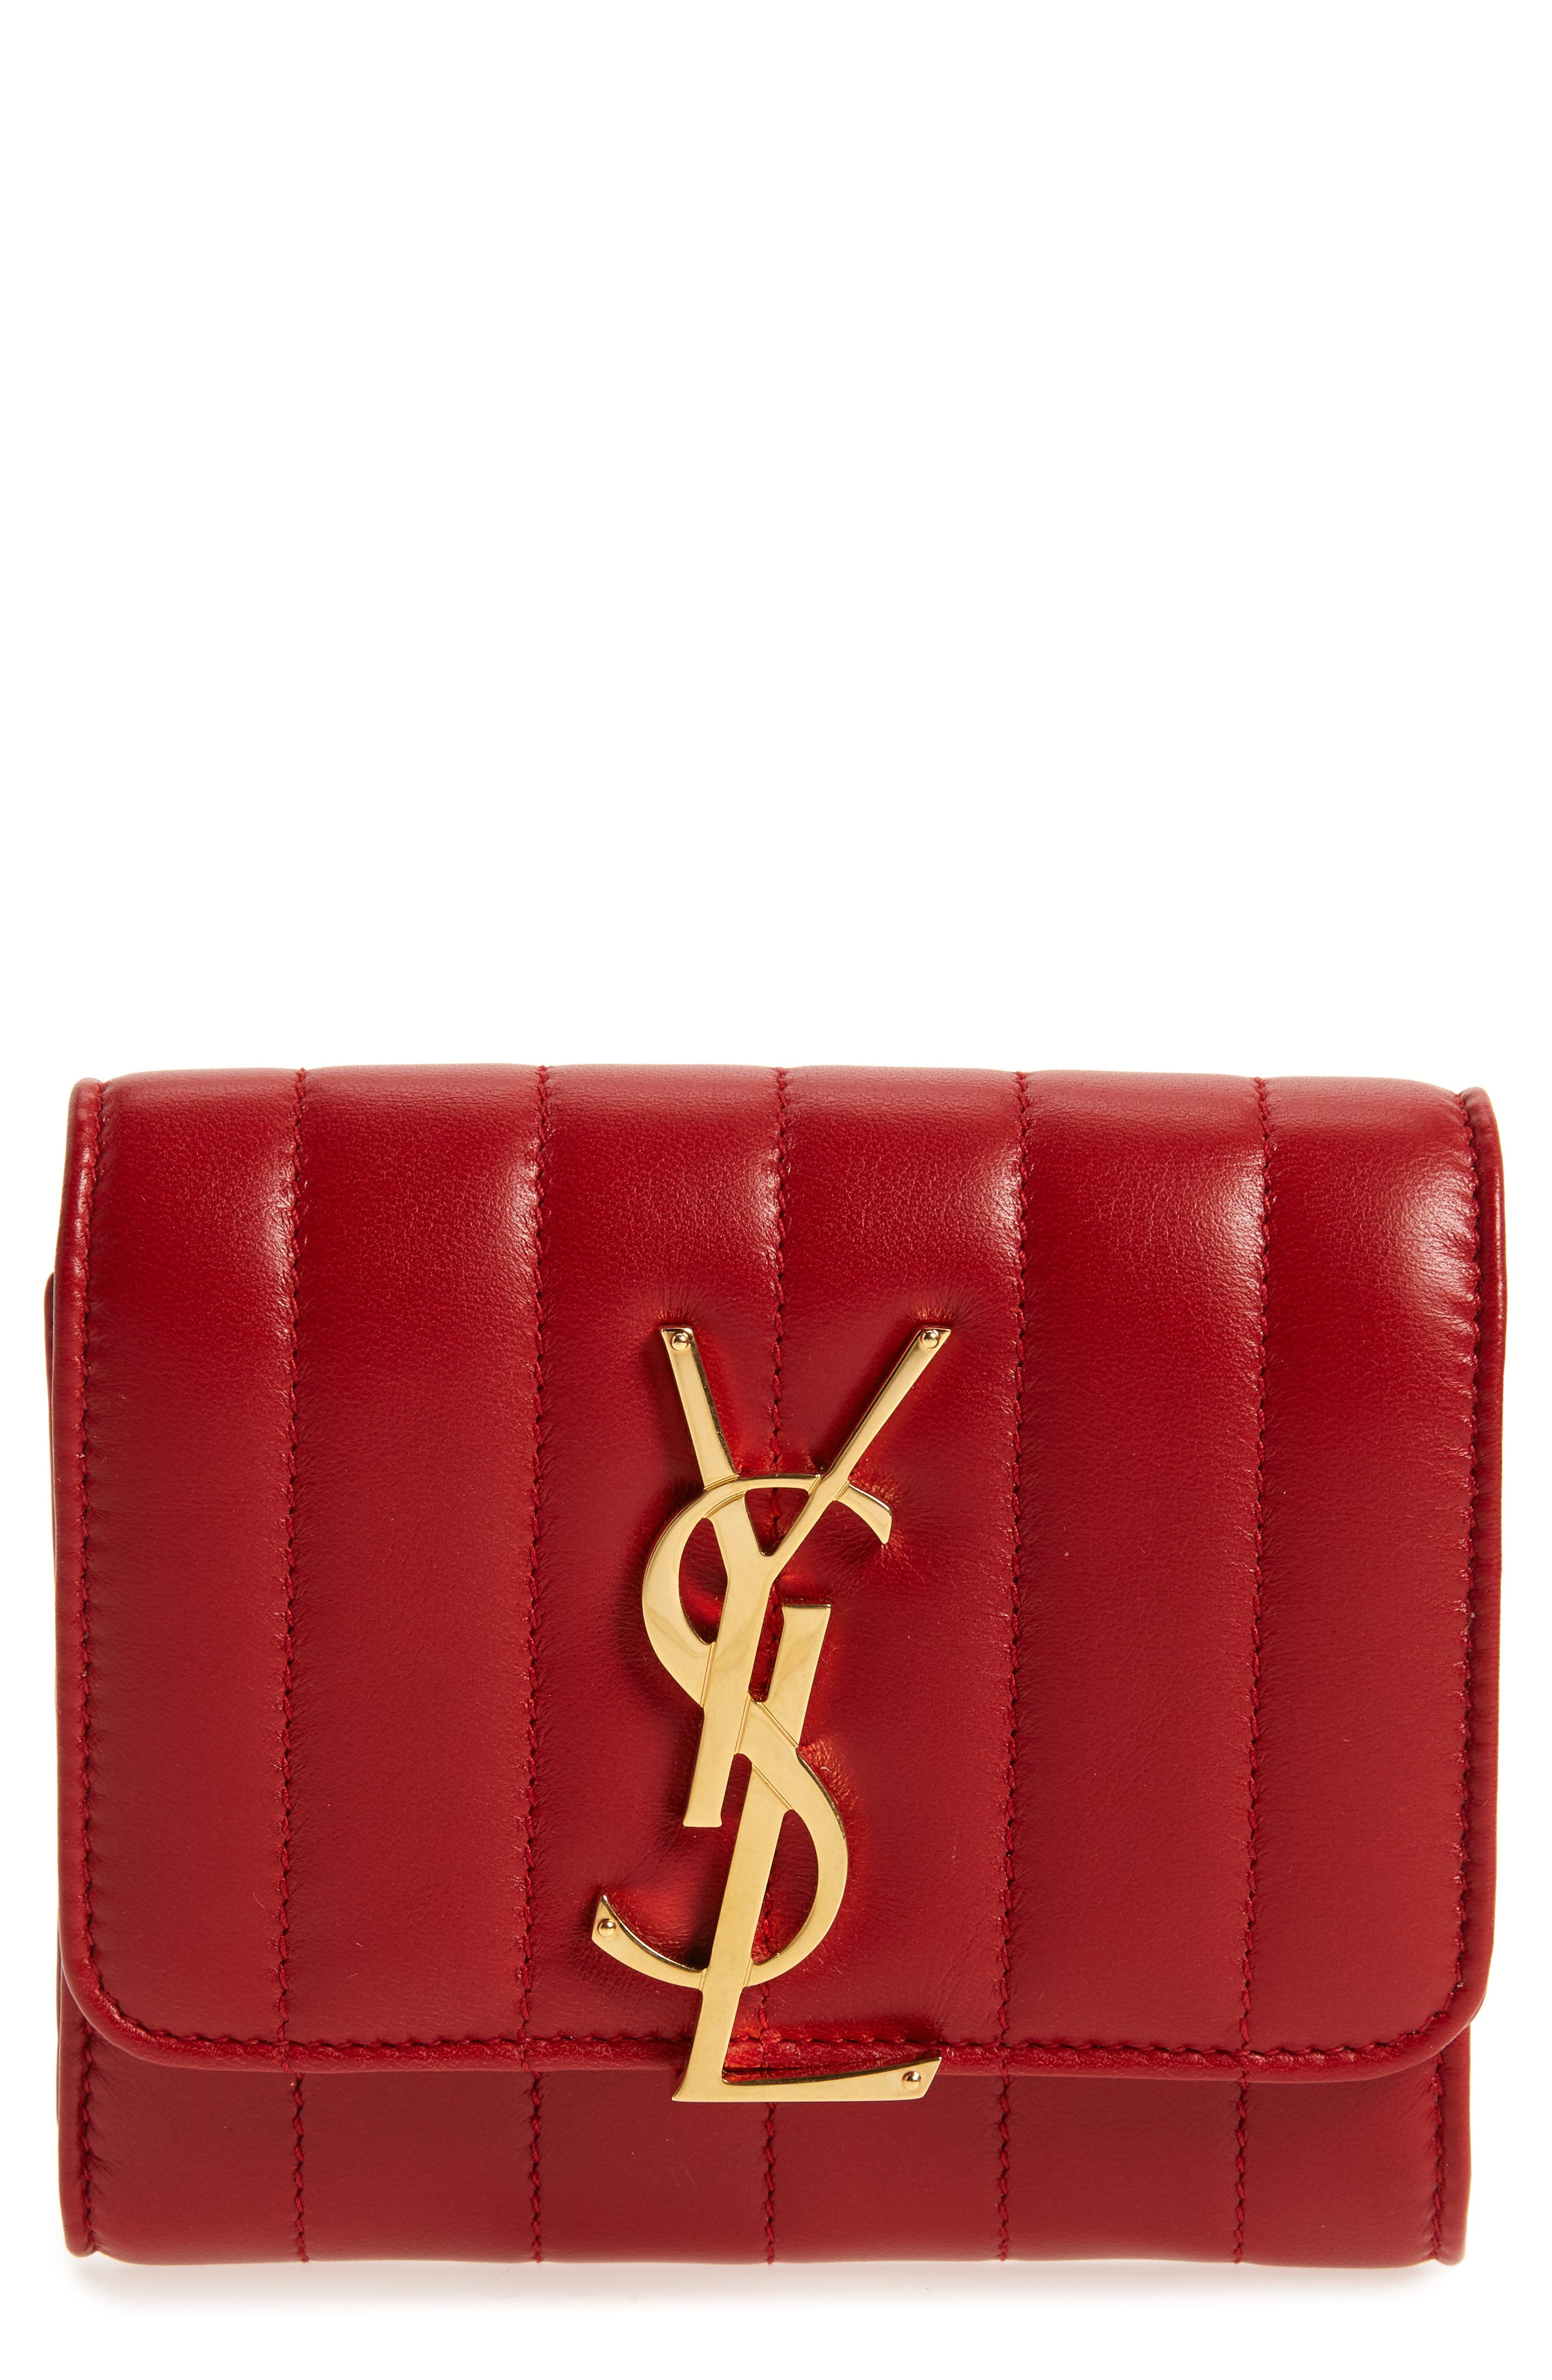 Vicky Lambskin Leather Trifold Wallet,                             Main thumbnail 1, color,                             ROUGE EROS